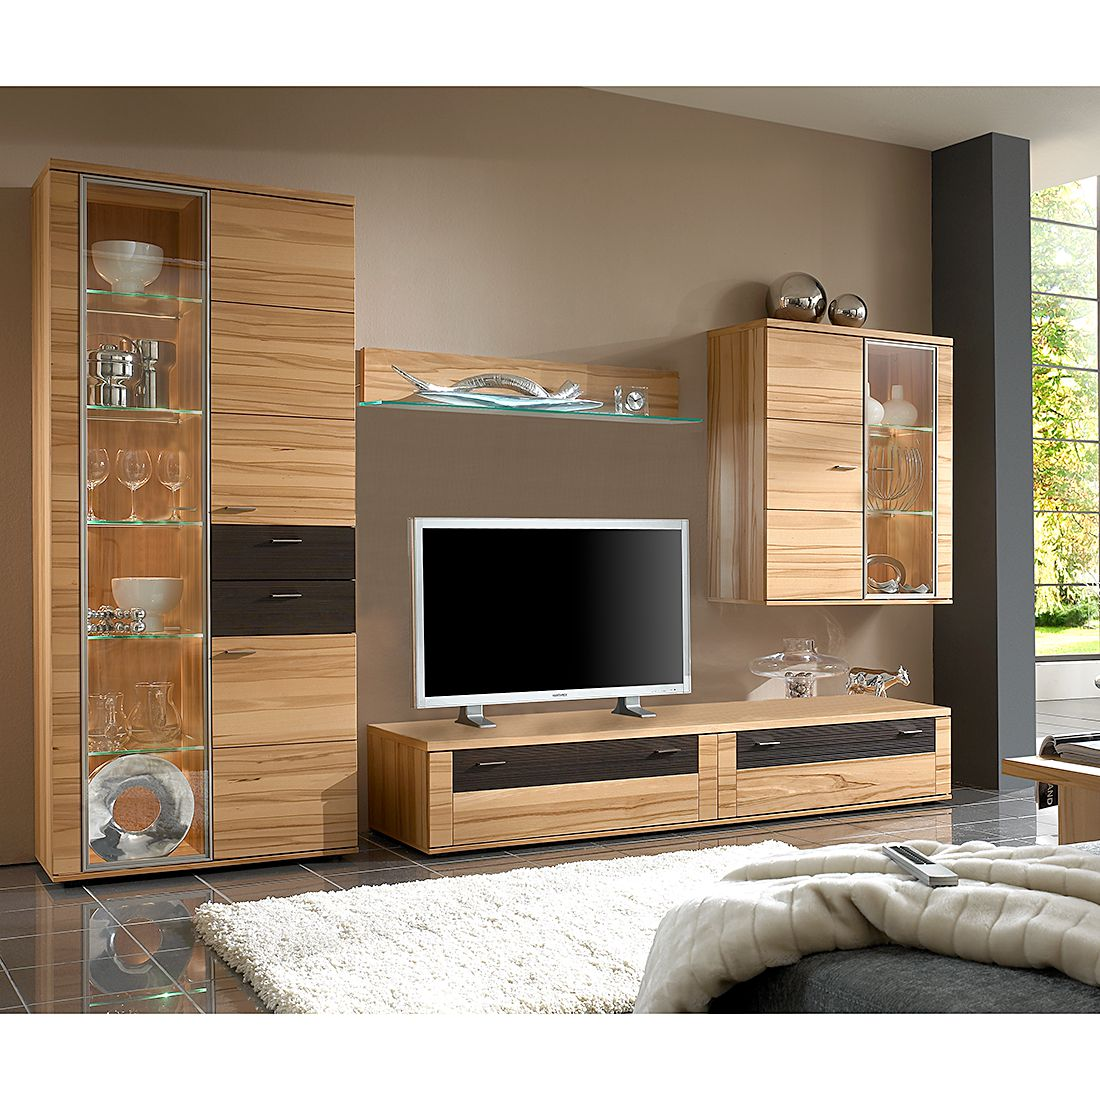 meuble tv meuble tv suspendue meuble tv suspendue trouvez meuble tv suspendue parmis nos. Black Bedroom Furniture Sets. Home Design Ideas